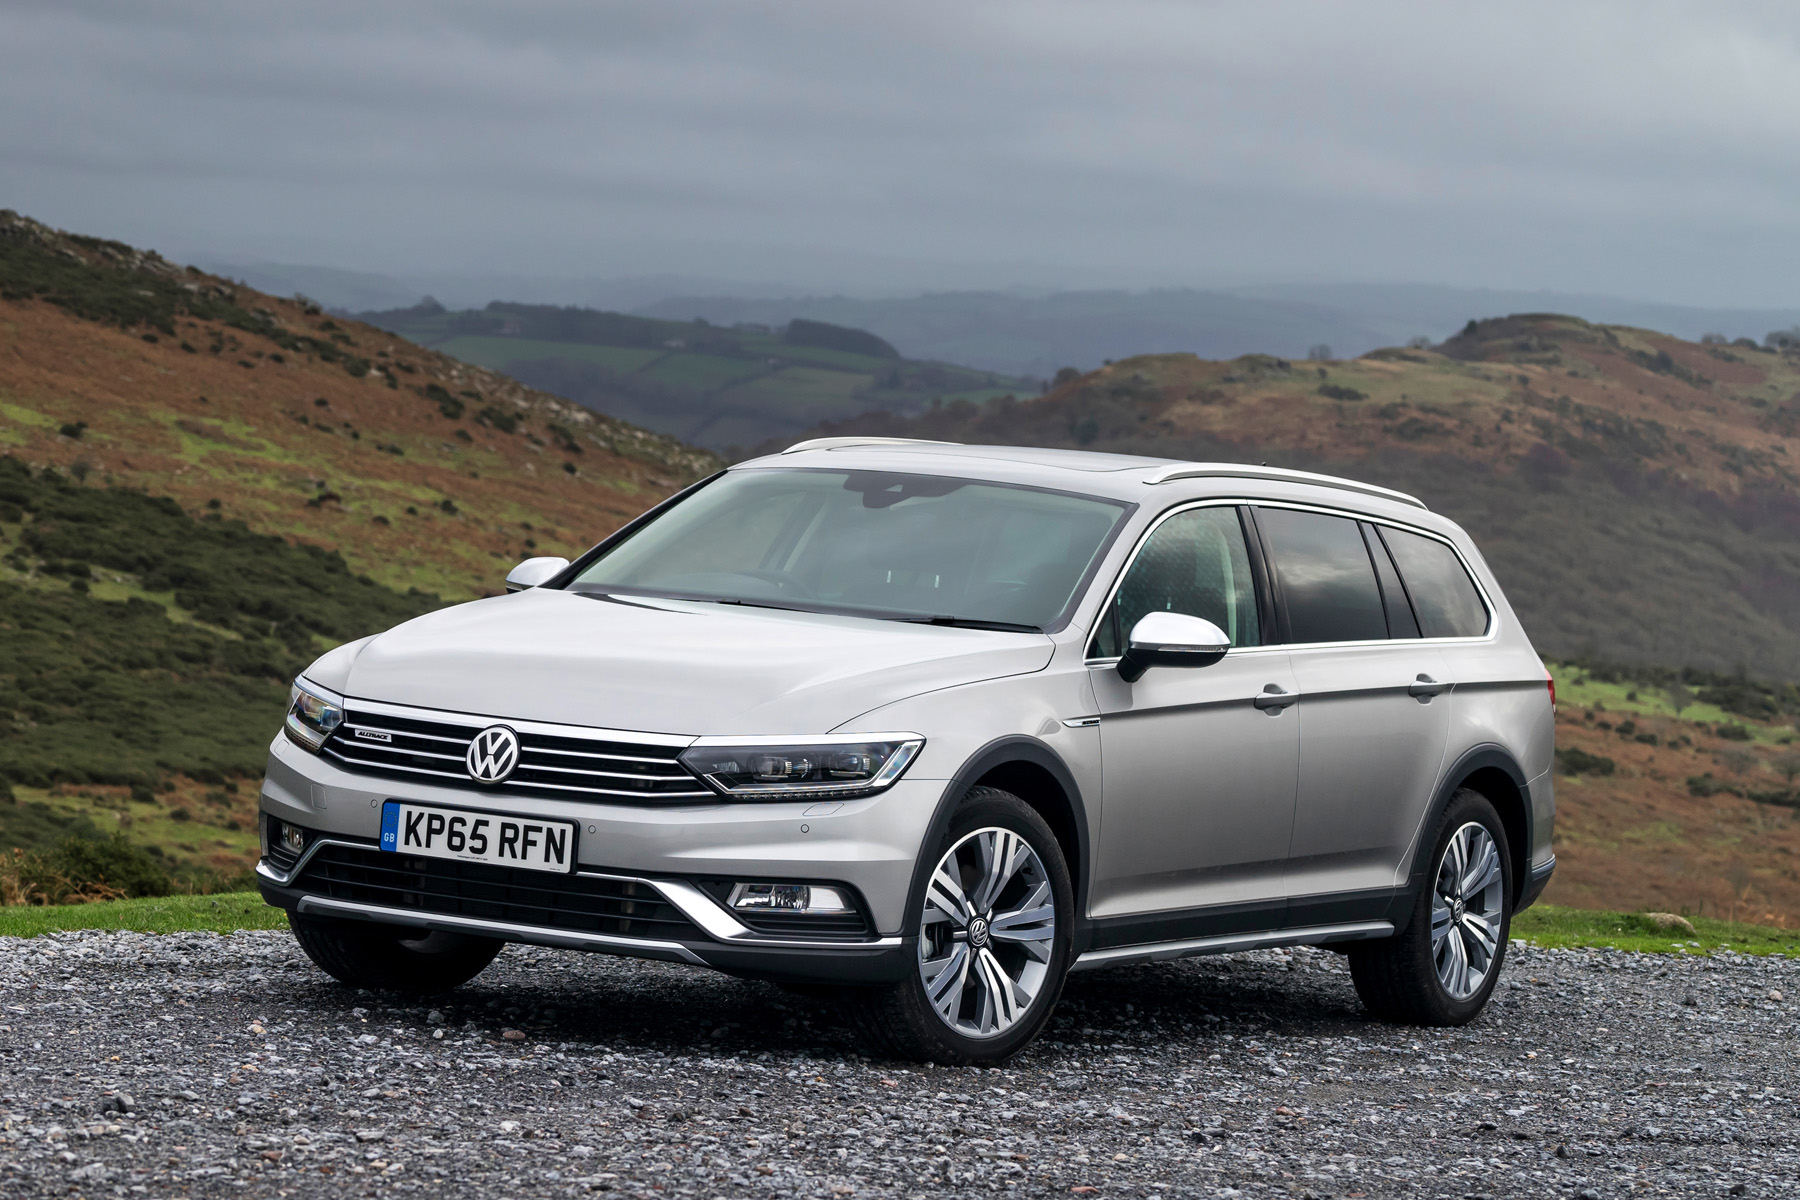 passat alltrack victorious at caravan club towcar of the year 2017 awards used cars ni blog. Black Bedroom Furniture Sets. Home Design Ideas